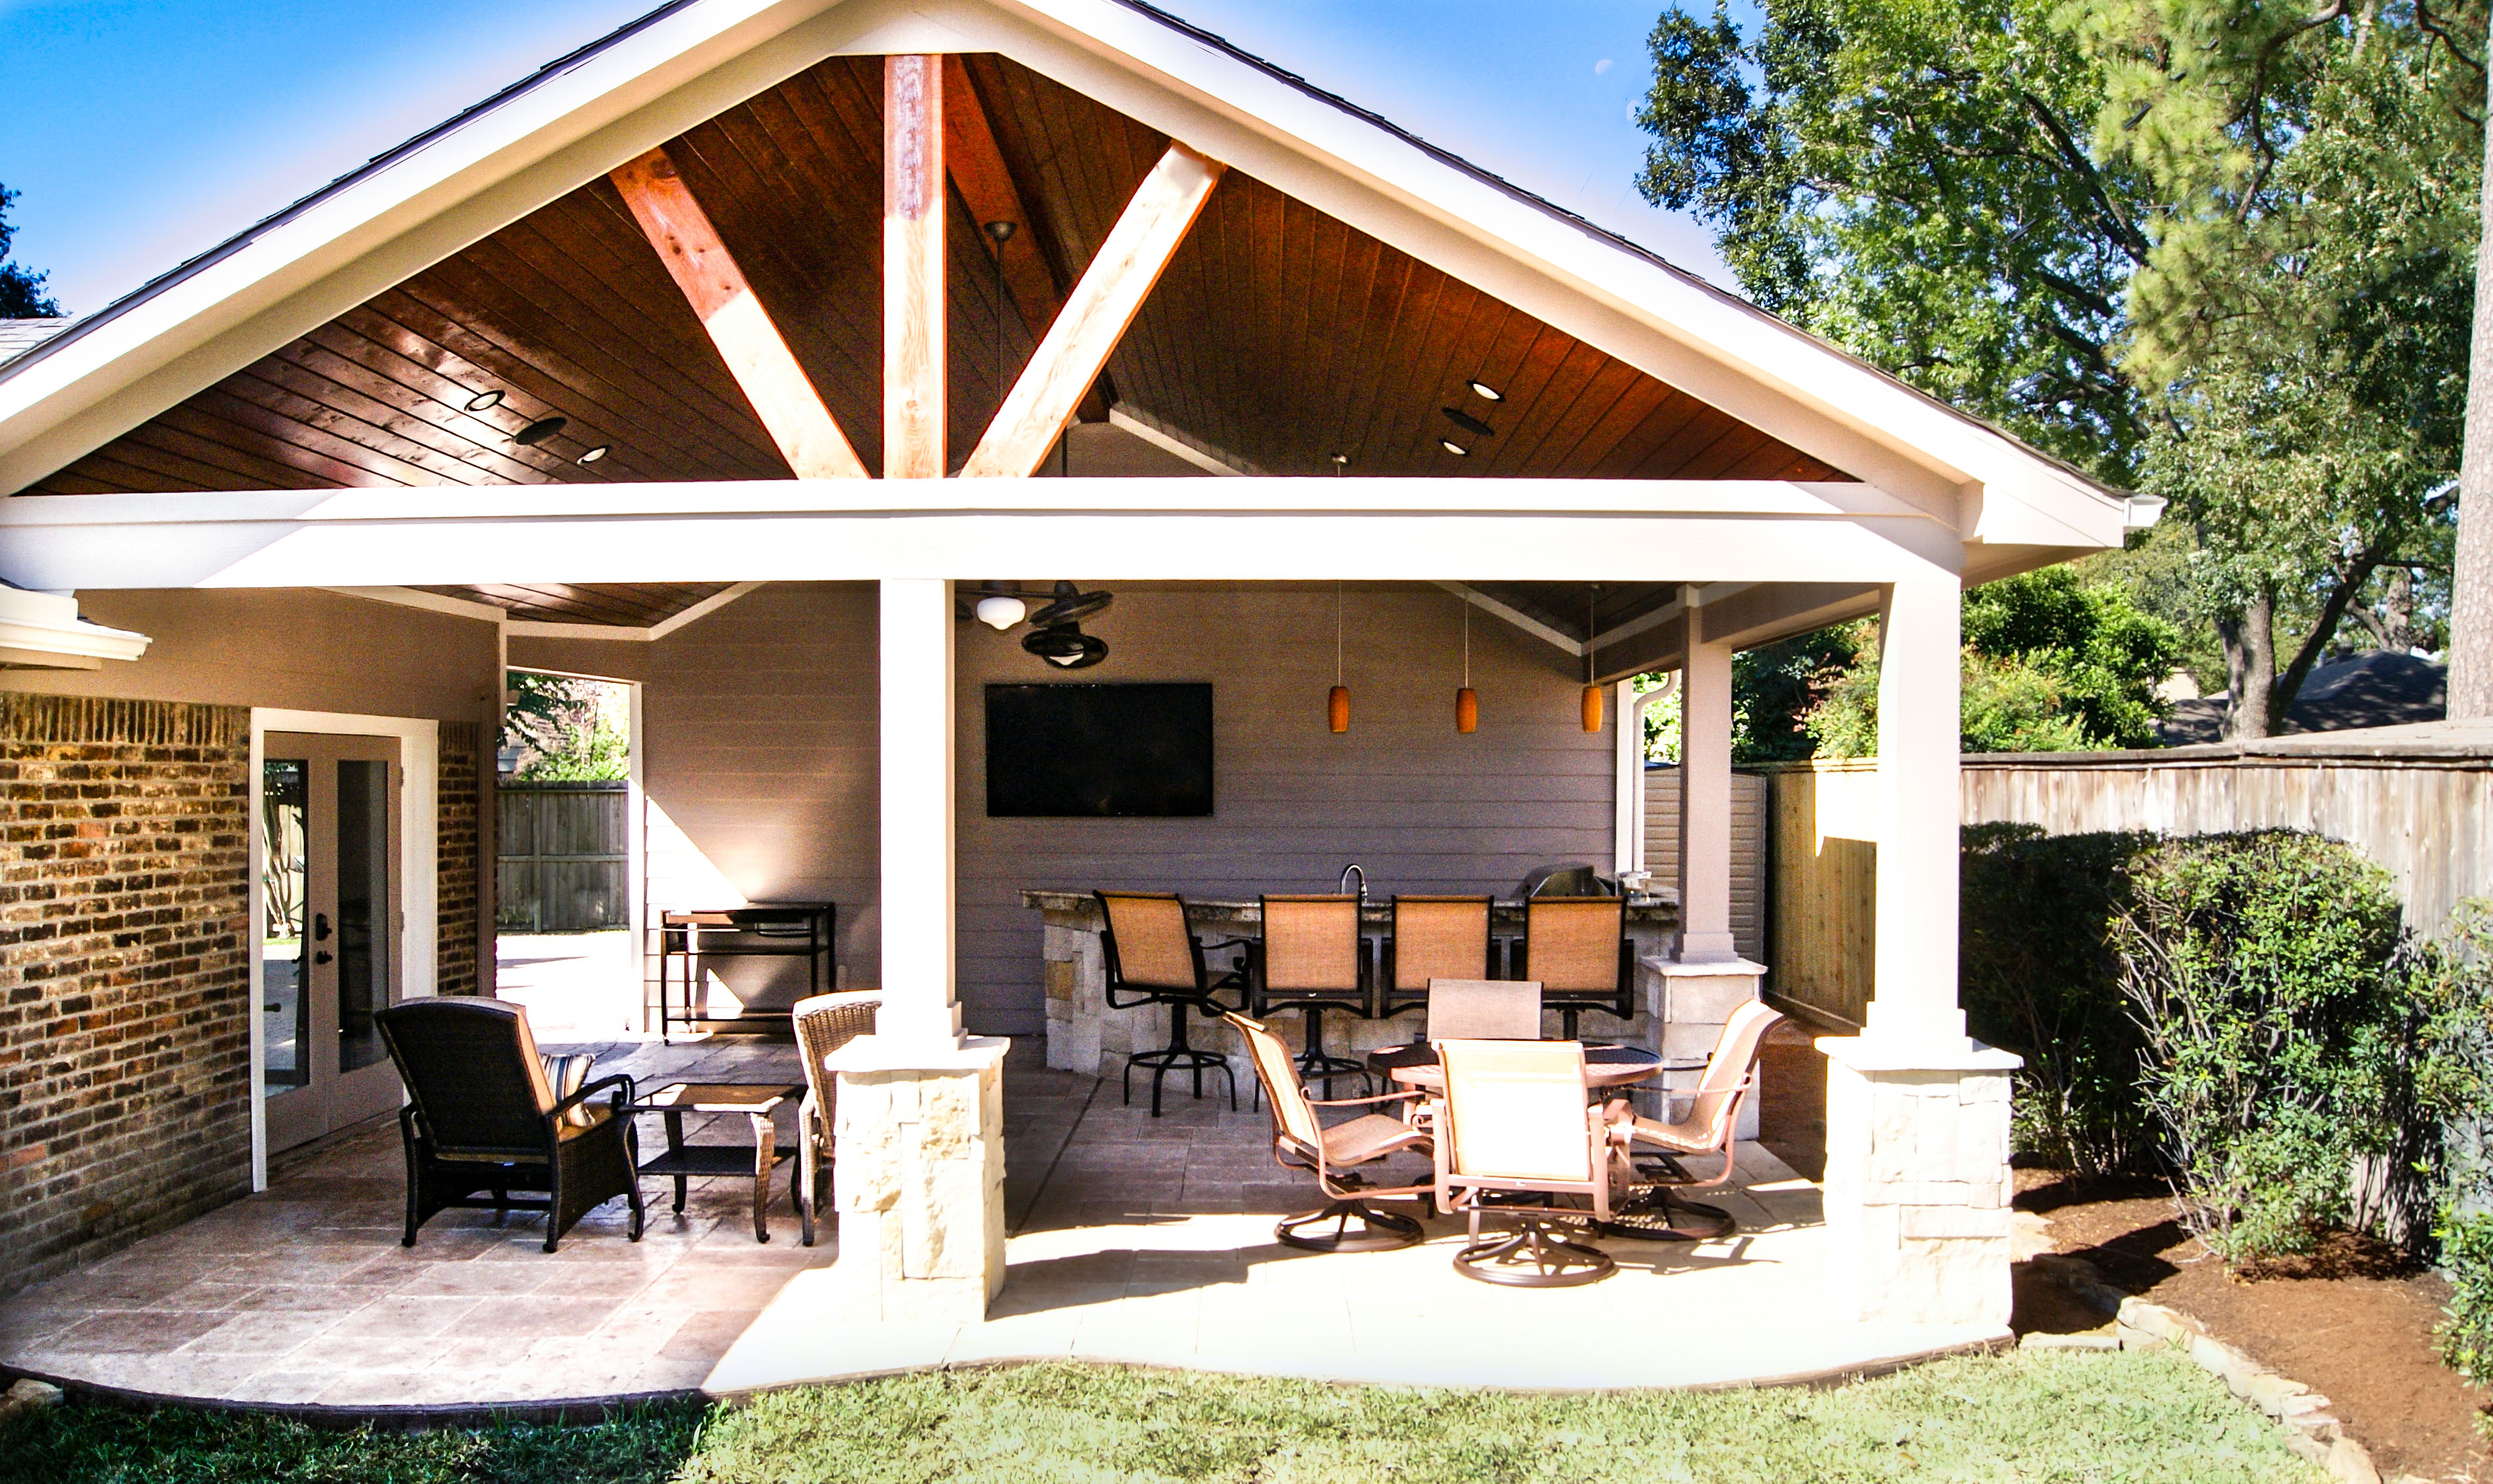 Patio Cover with Outdoor Kitchen - Texas Custom Patios on Outdoor Kitchen With Covered Patio id=66717